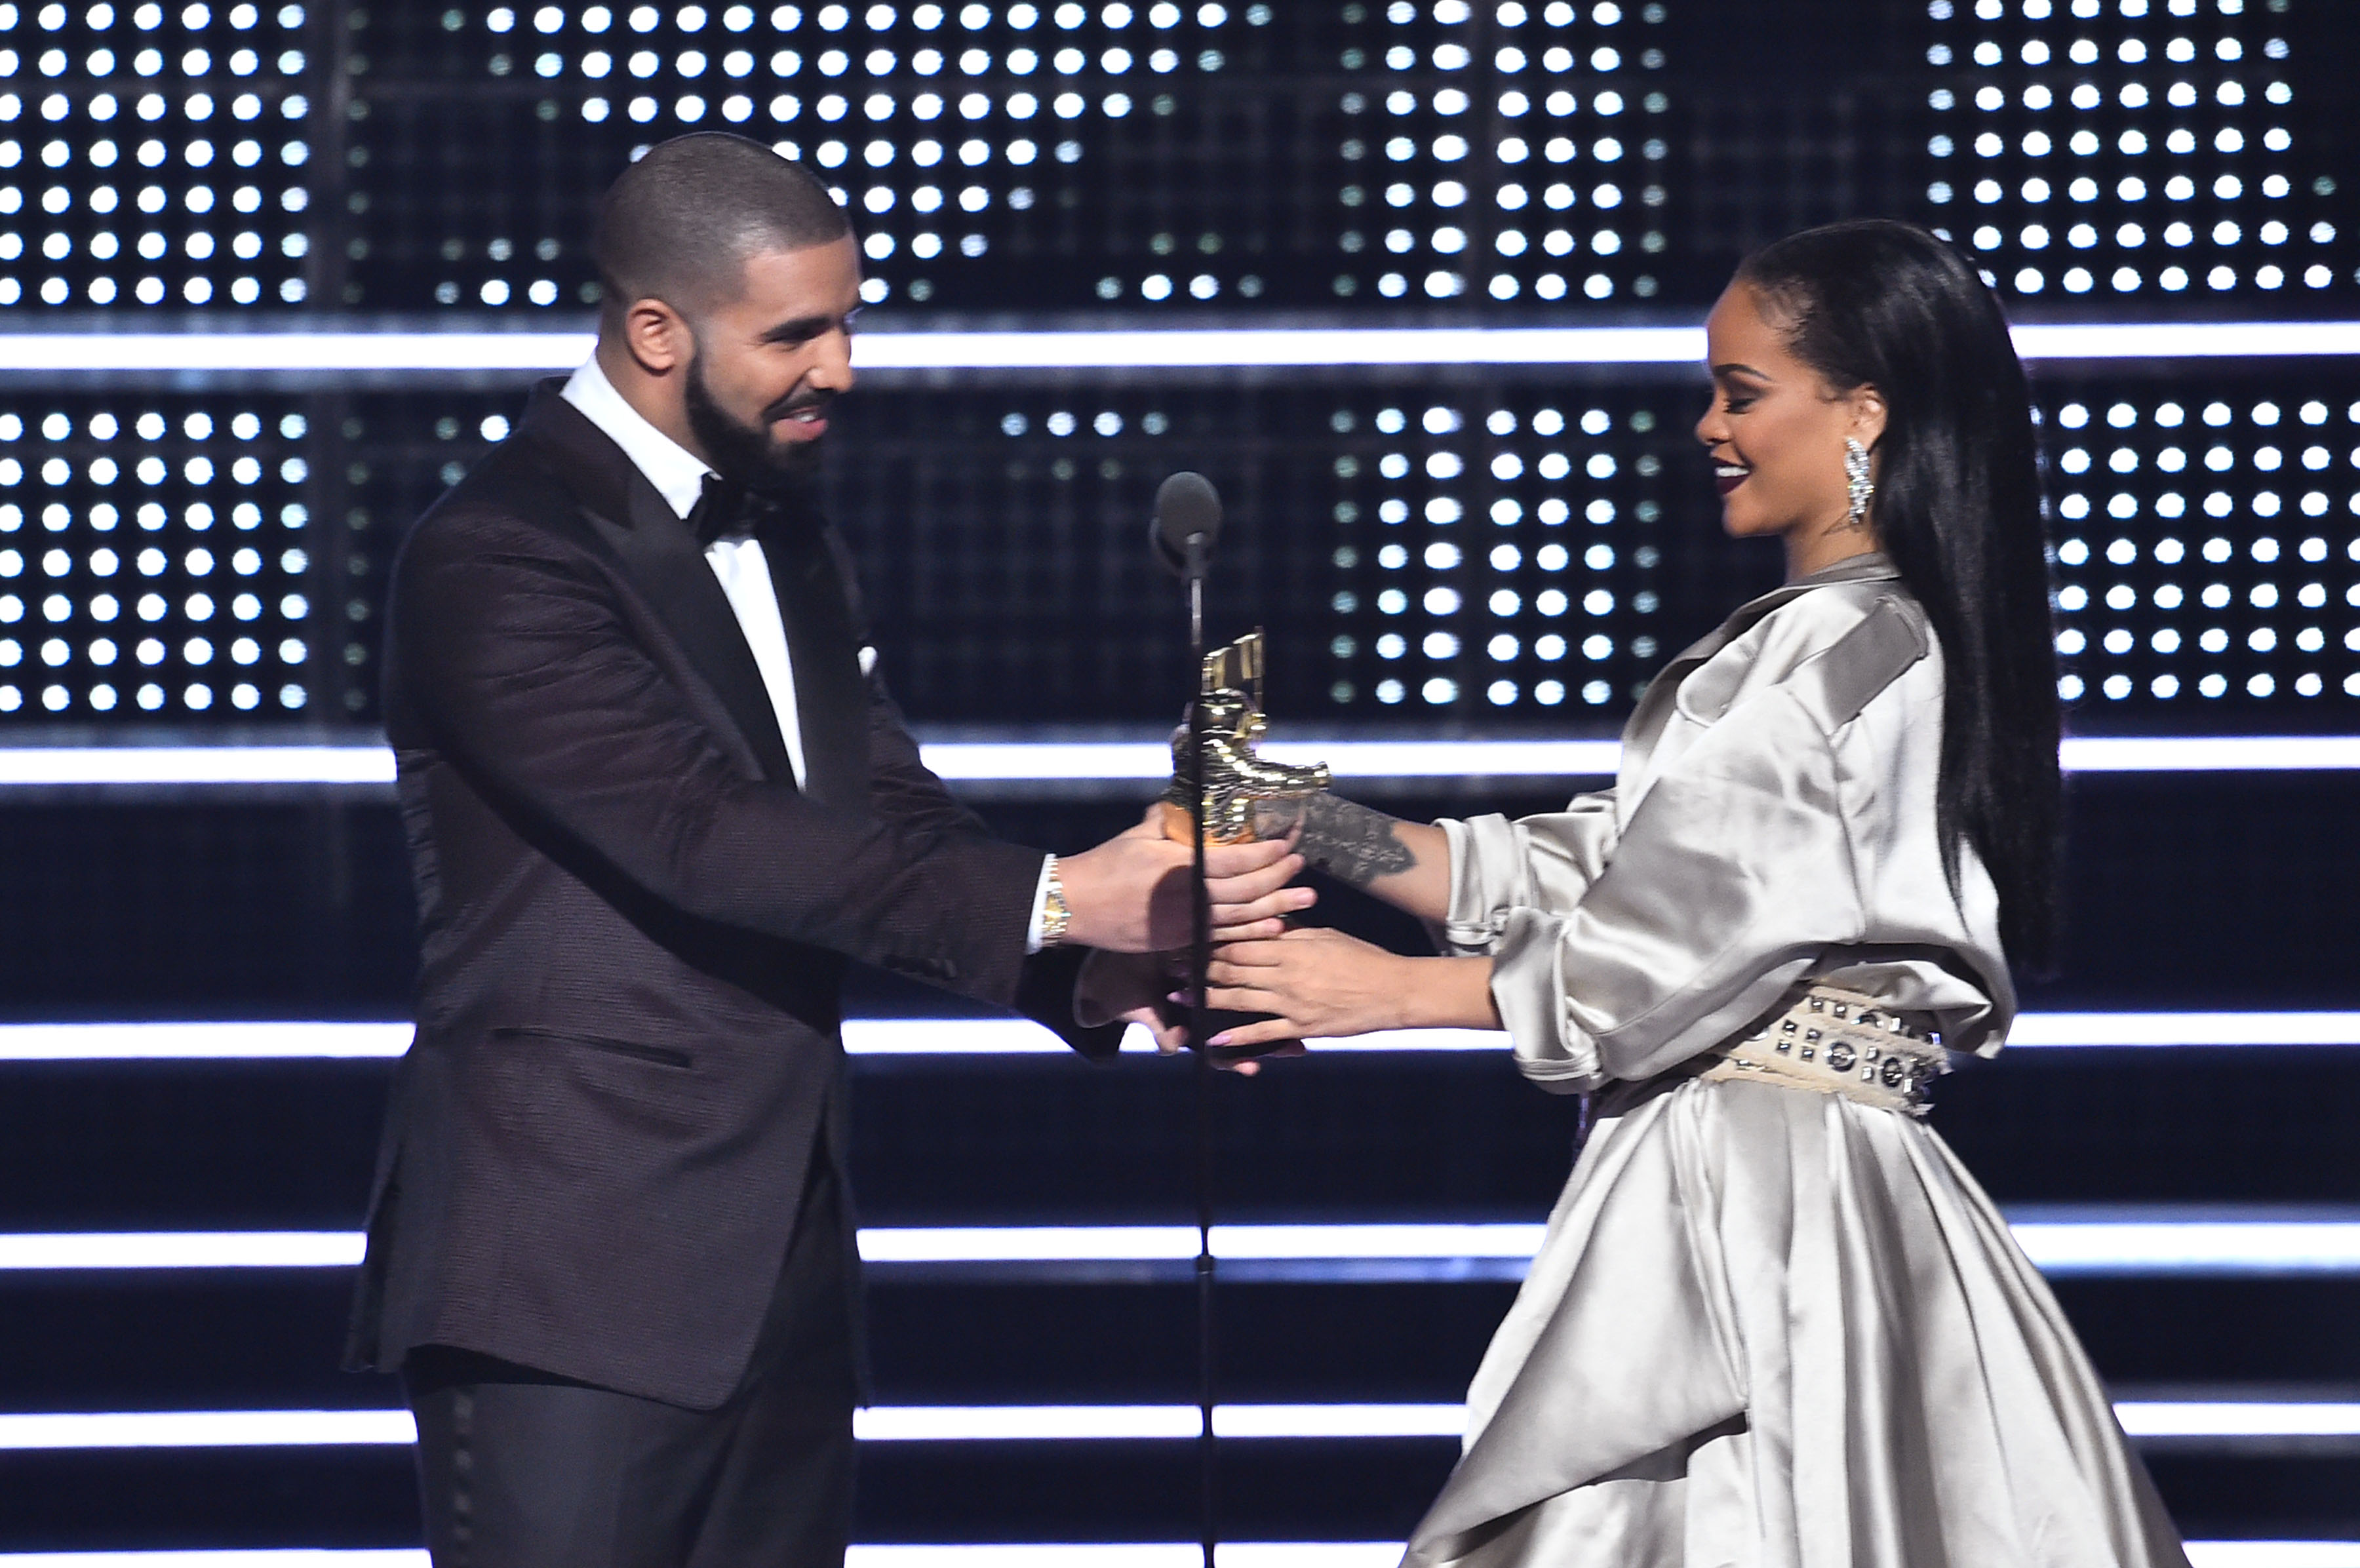 NEW YORK, NY - AUGUST 28:  Drake presents Rihanna with the The Video Vanguard Award during the 2016 MTV Video Music Awards at Madison Square Garden on August 28, 2016 in New York City.